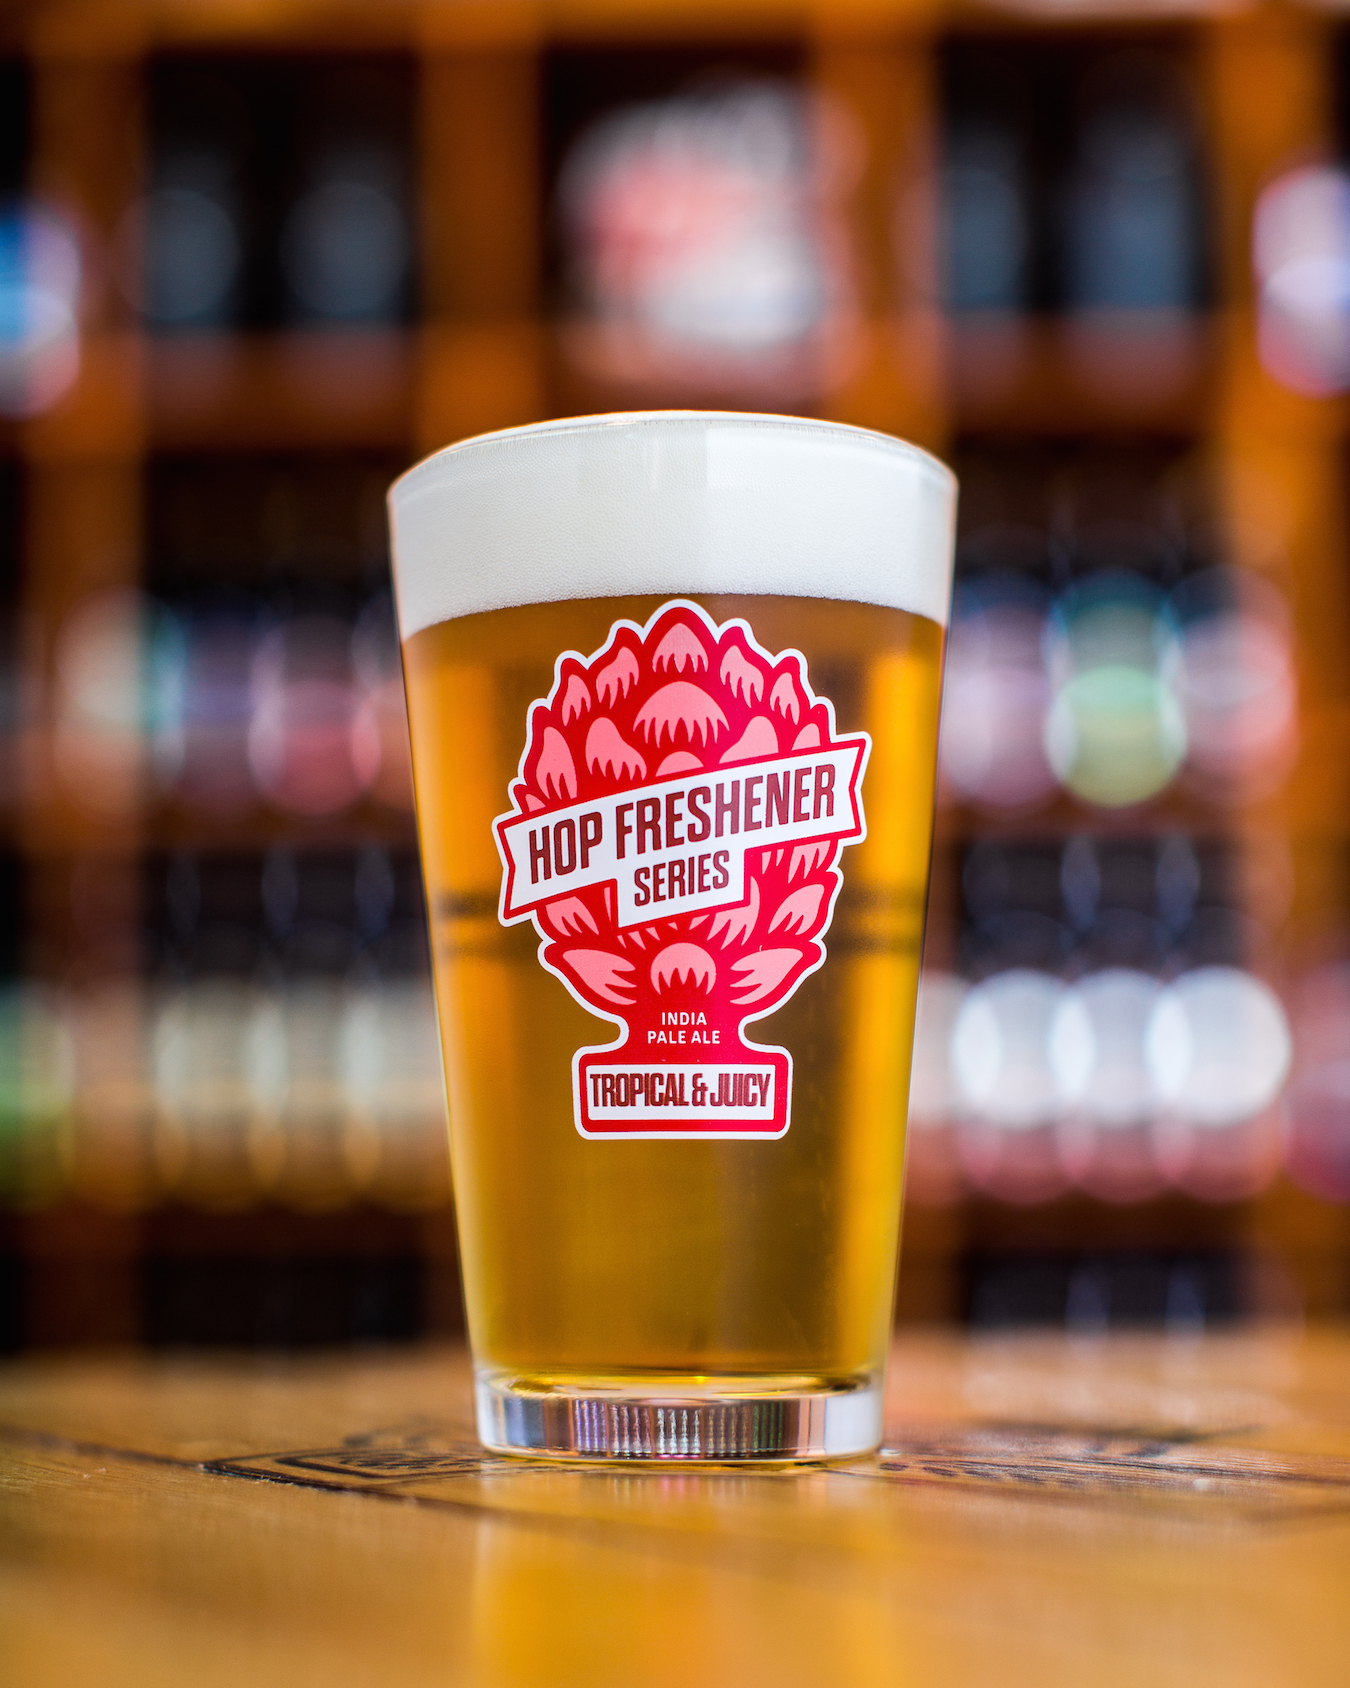 The Hop Concept Hop Freshener Series Tropical & Juicy Pint Glass Mini-Thumbnail